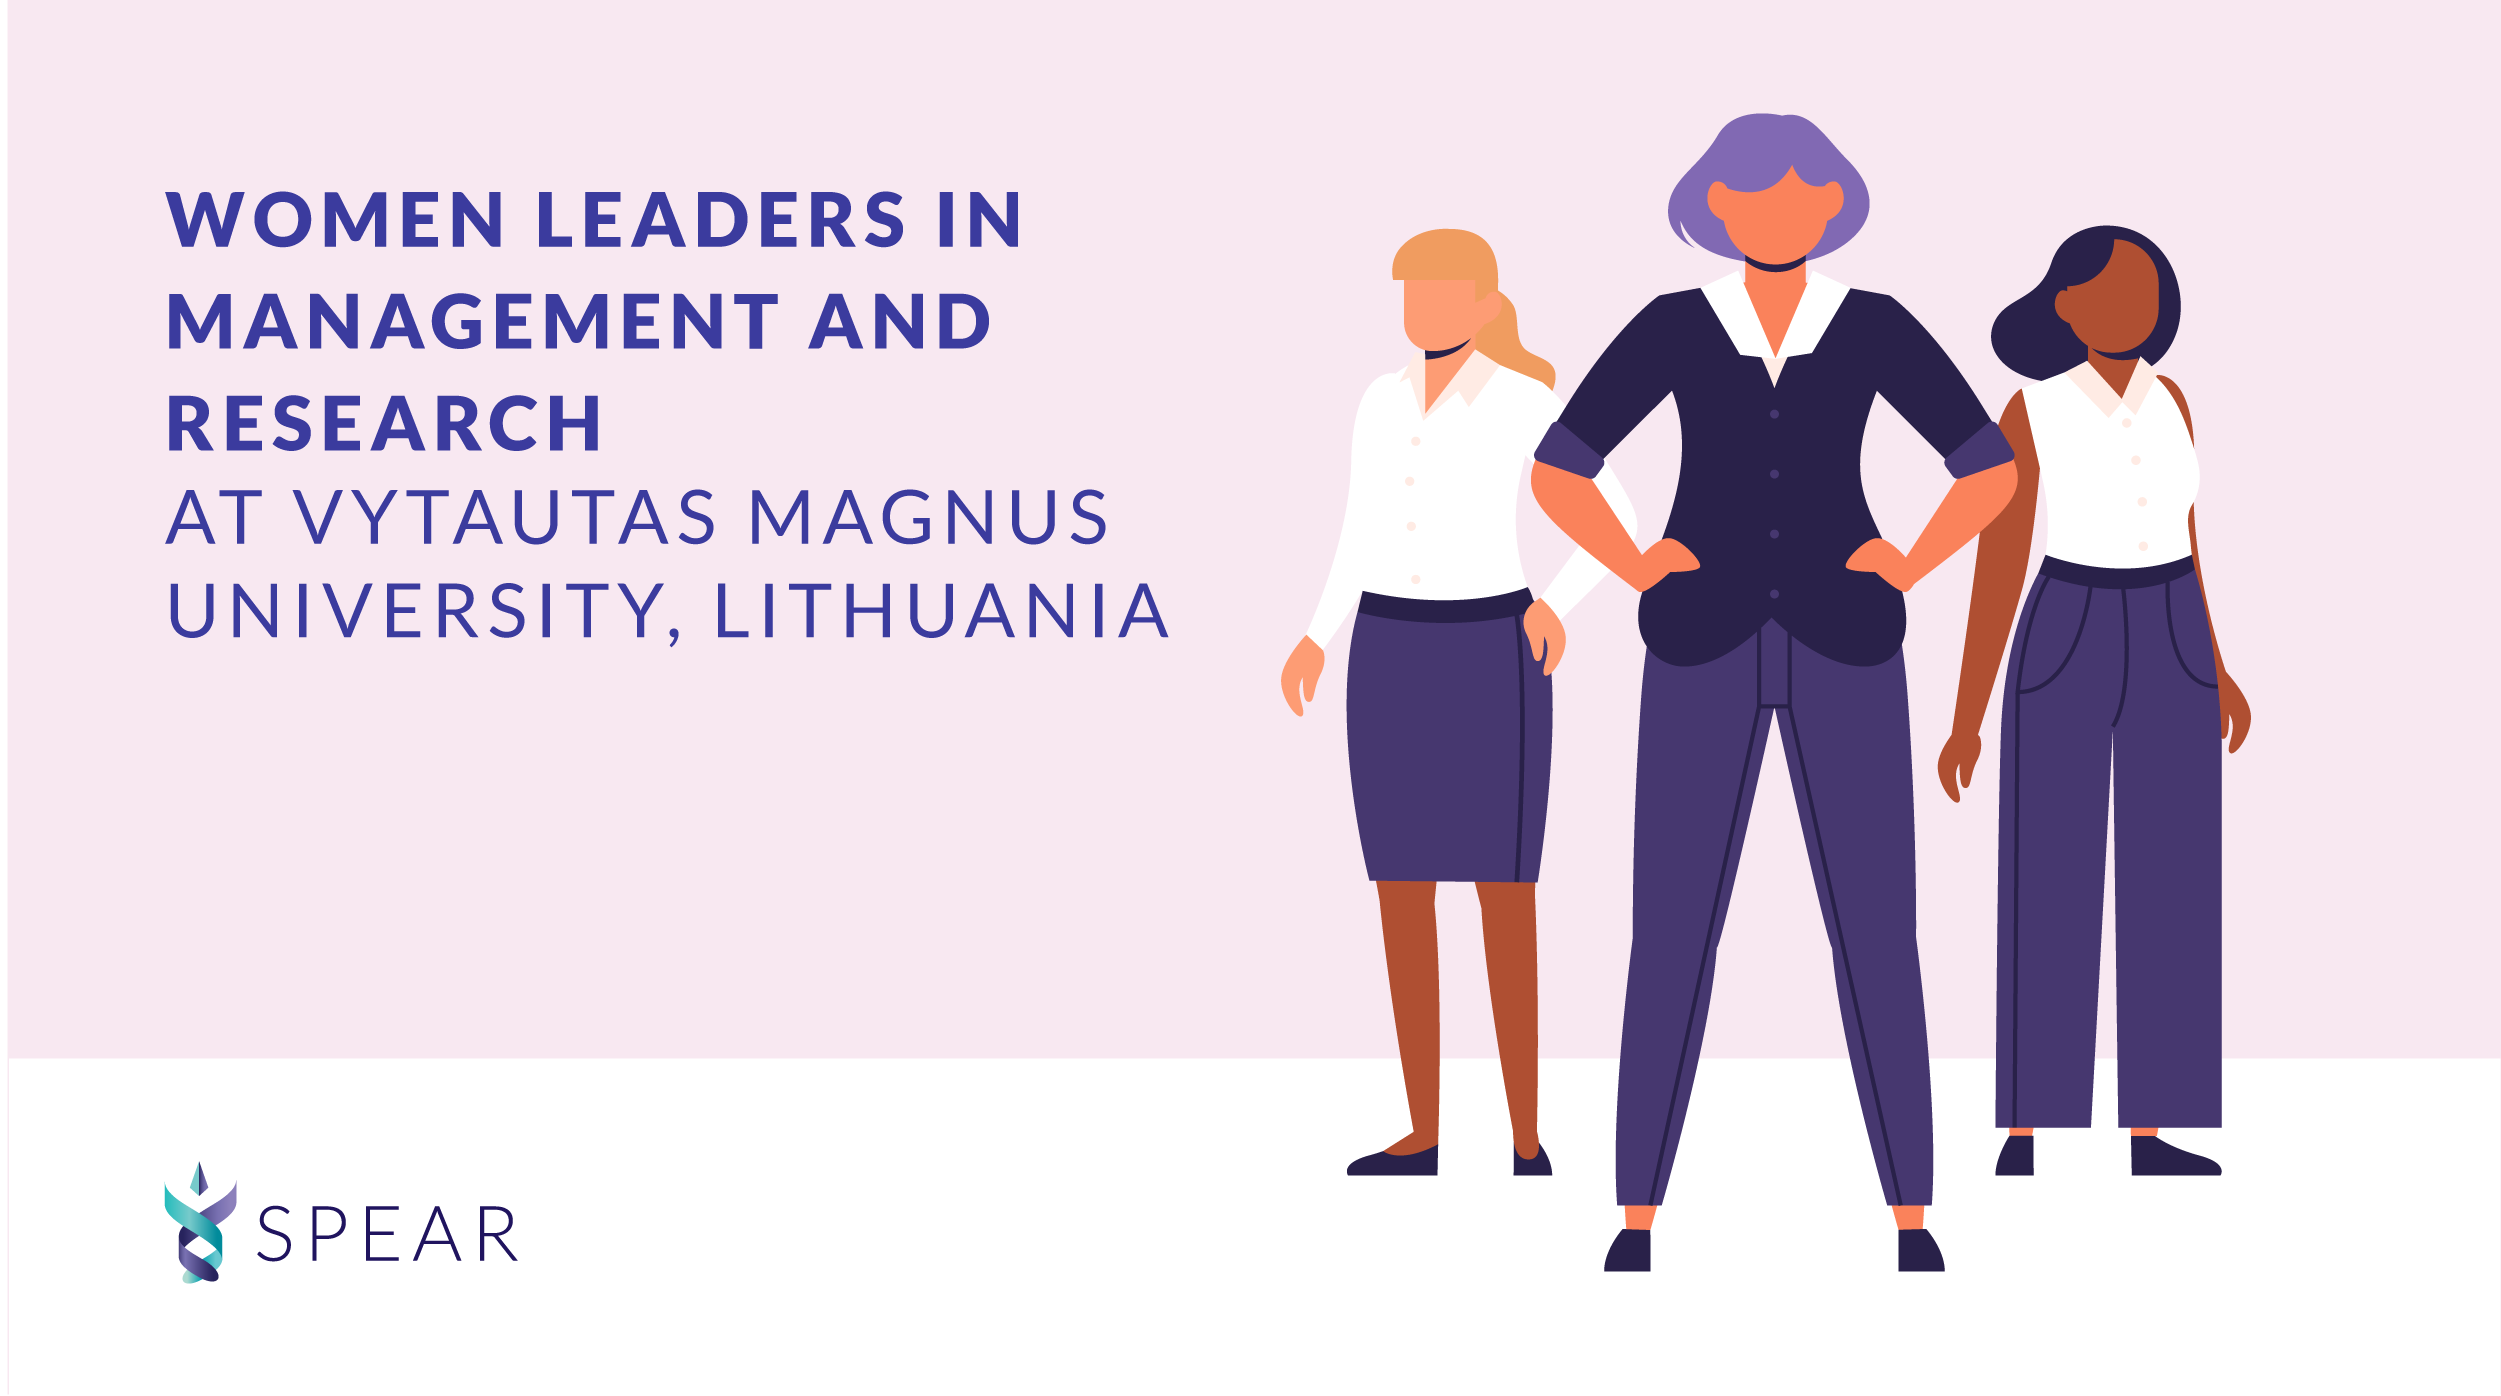 Women leaders in management and research at Vytautas Magnus University, Lithuania